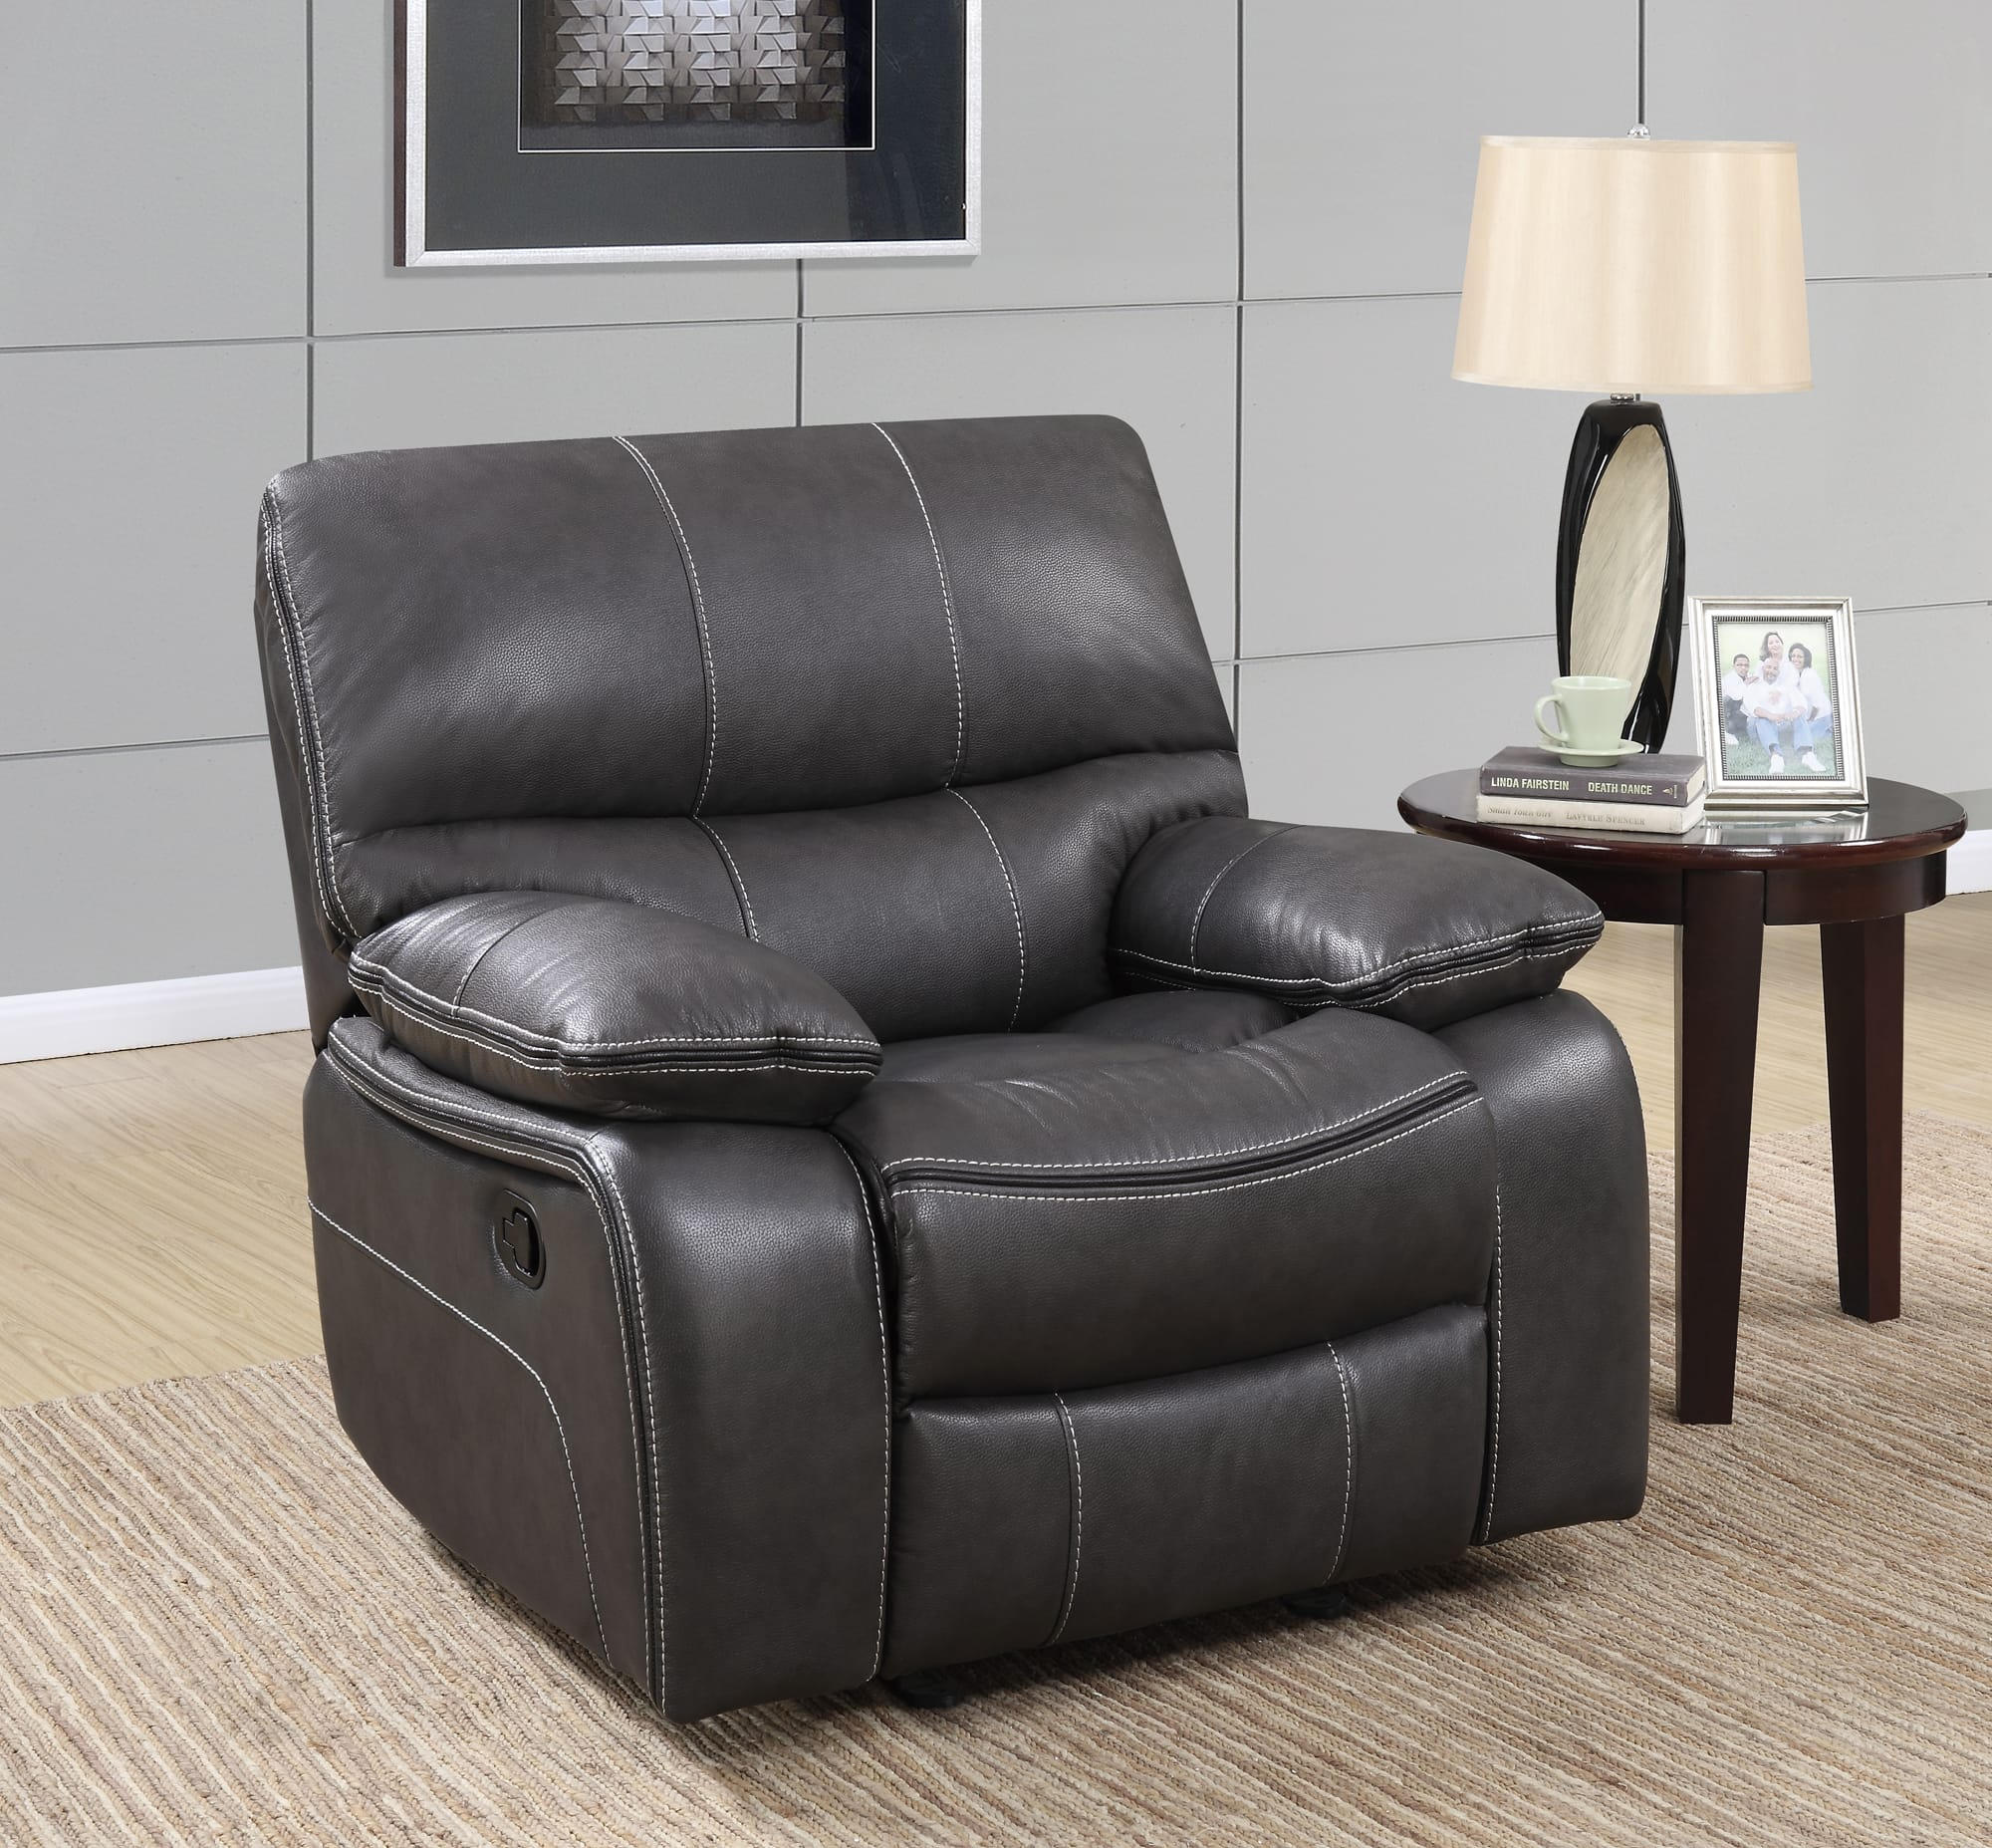 U0040 Grey/Black Leather Glider Reclining Chair By Global Furniture (Global  Furniture)